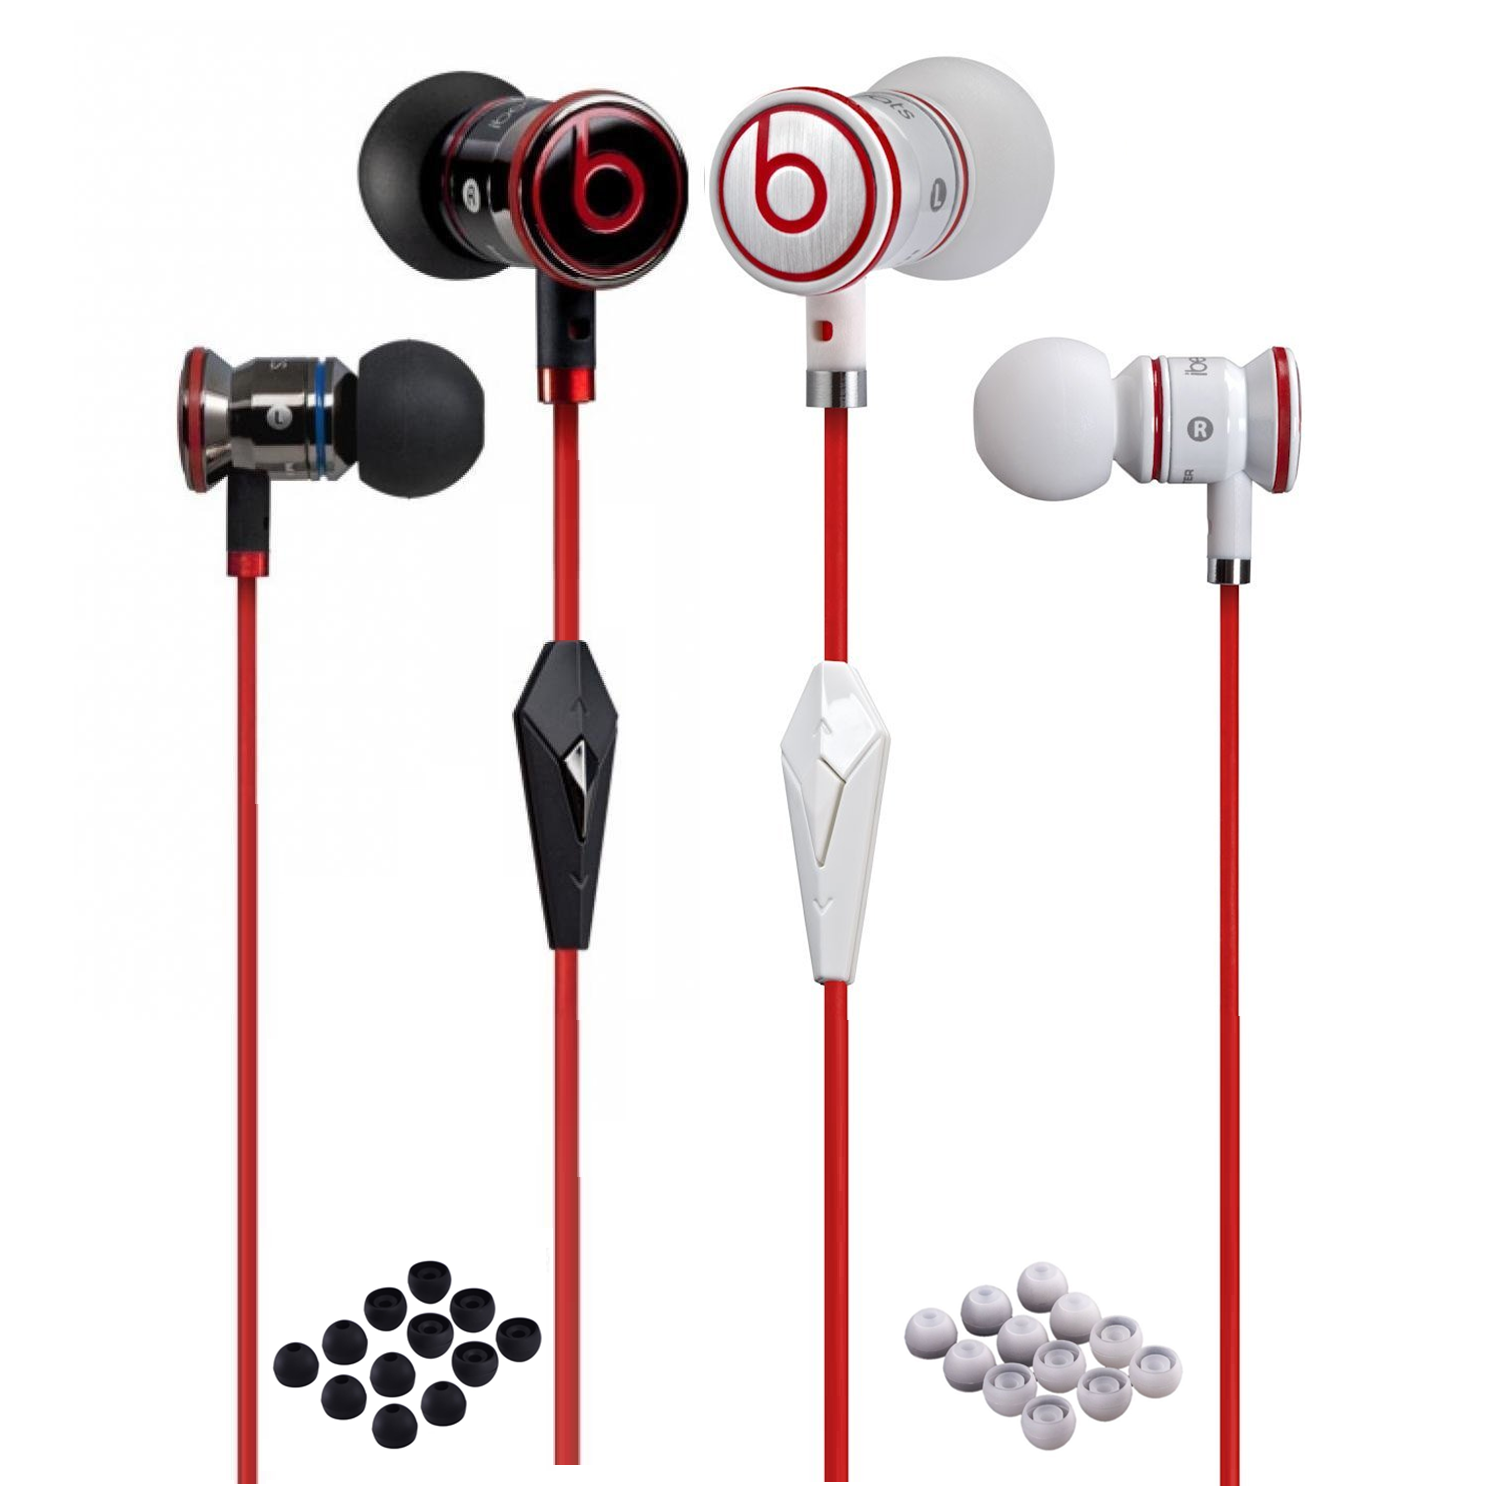 Beats By Dre - iBeats by Dr Dre Control Talk Mic In-Ear Earbuds Beats Mobile Headset Headphones